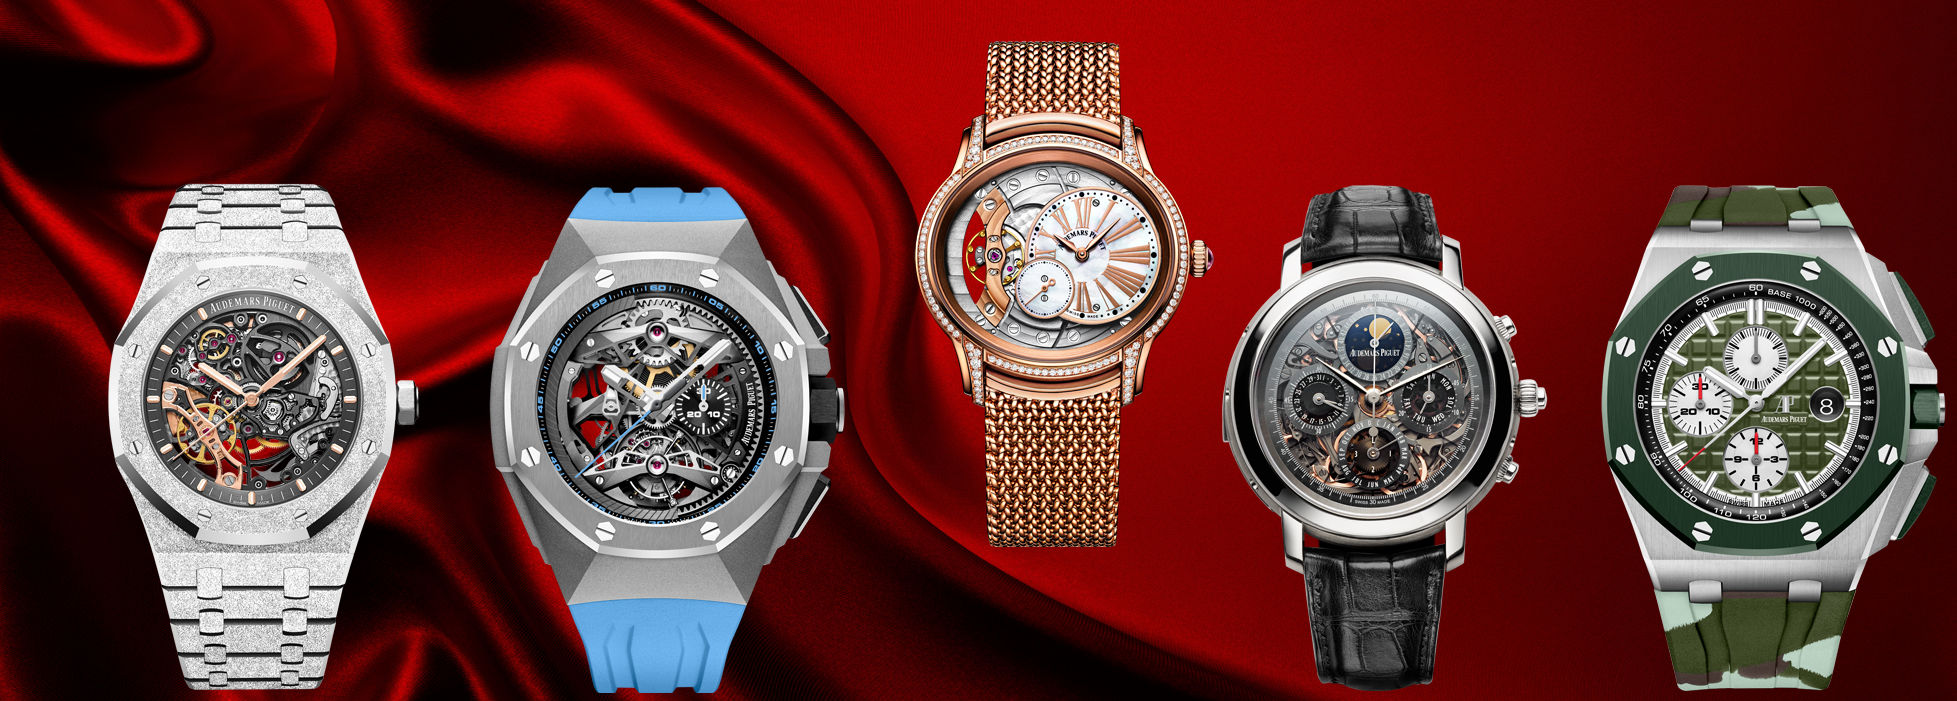 Audermars Piguet Watches